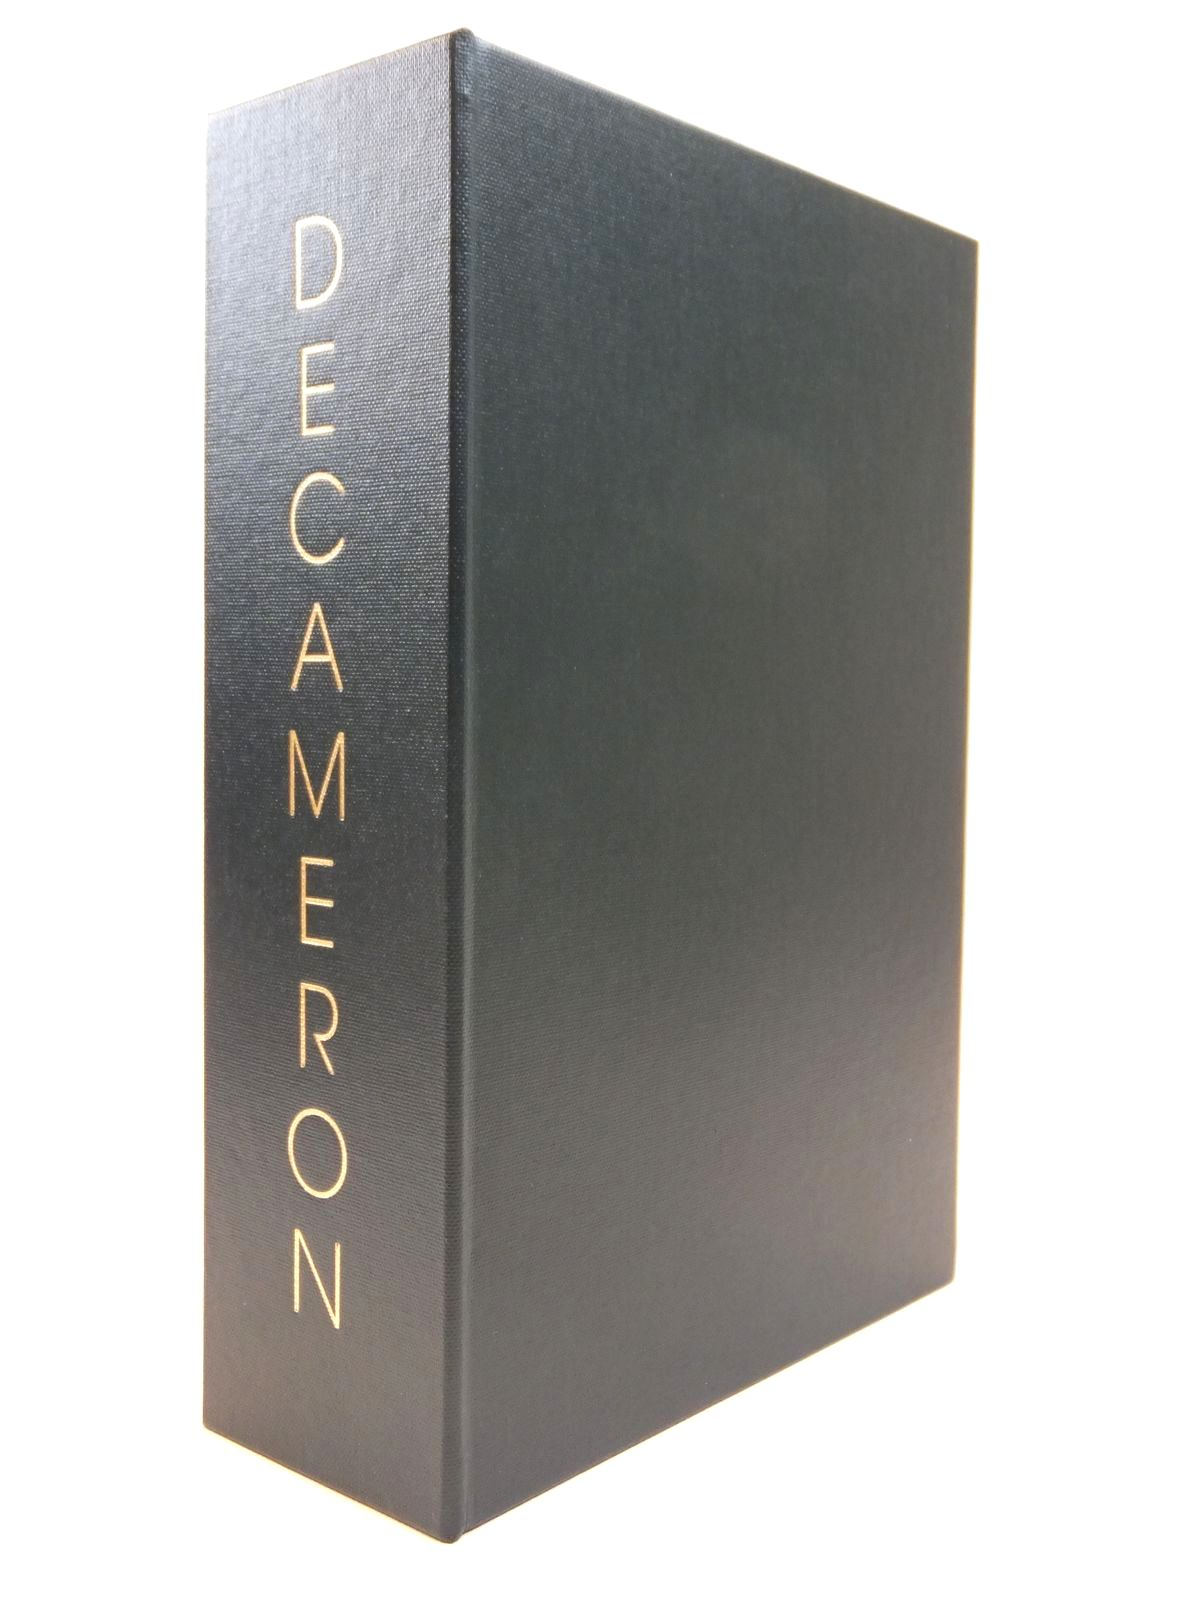 Photo of THE DECAMERON OF GIOVANNI BOCCACCIO written by Boccaccio, Giovanni Aldington, Richard illustrated by Buckland-Wright, John published by Folio Society (STOCK CODE: 2121848)  for sale by Stella & Rose's Books